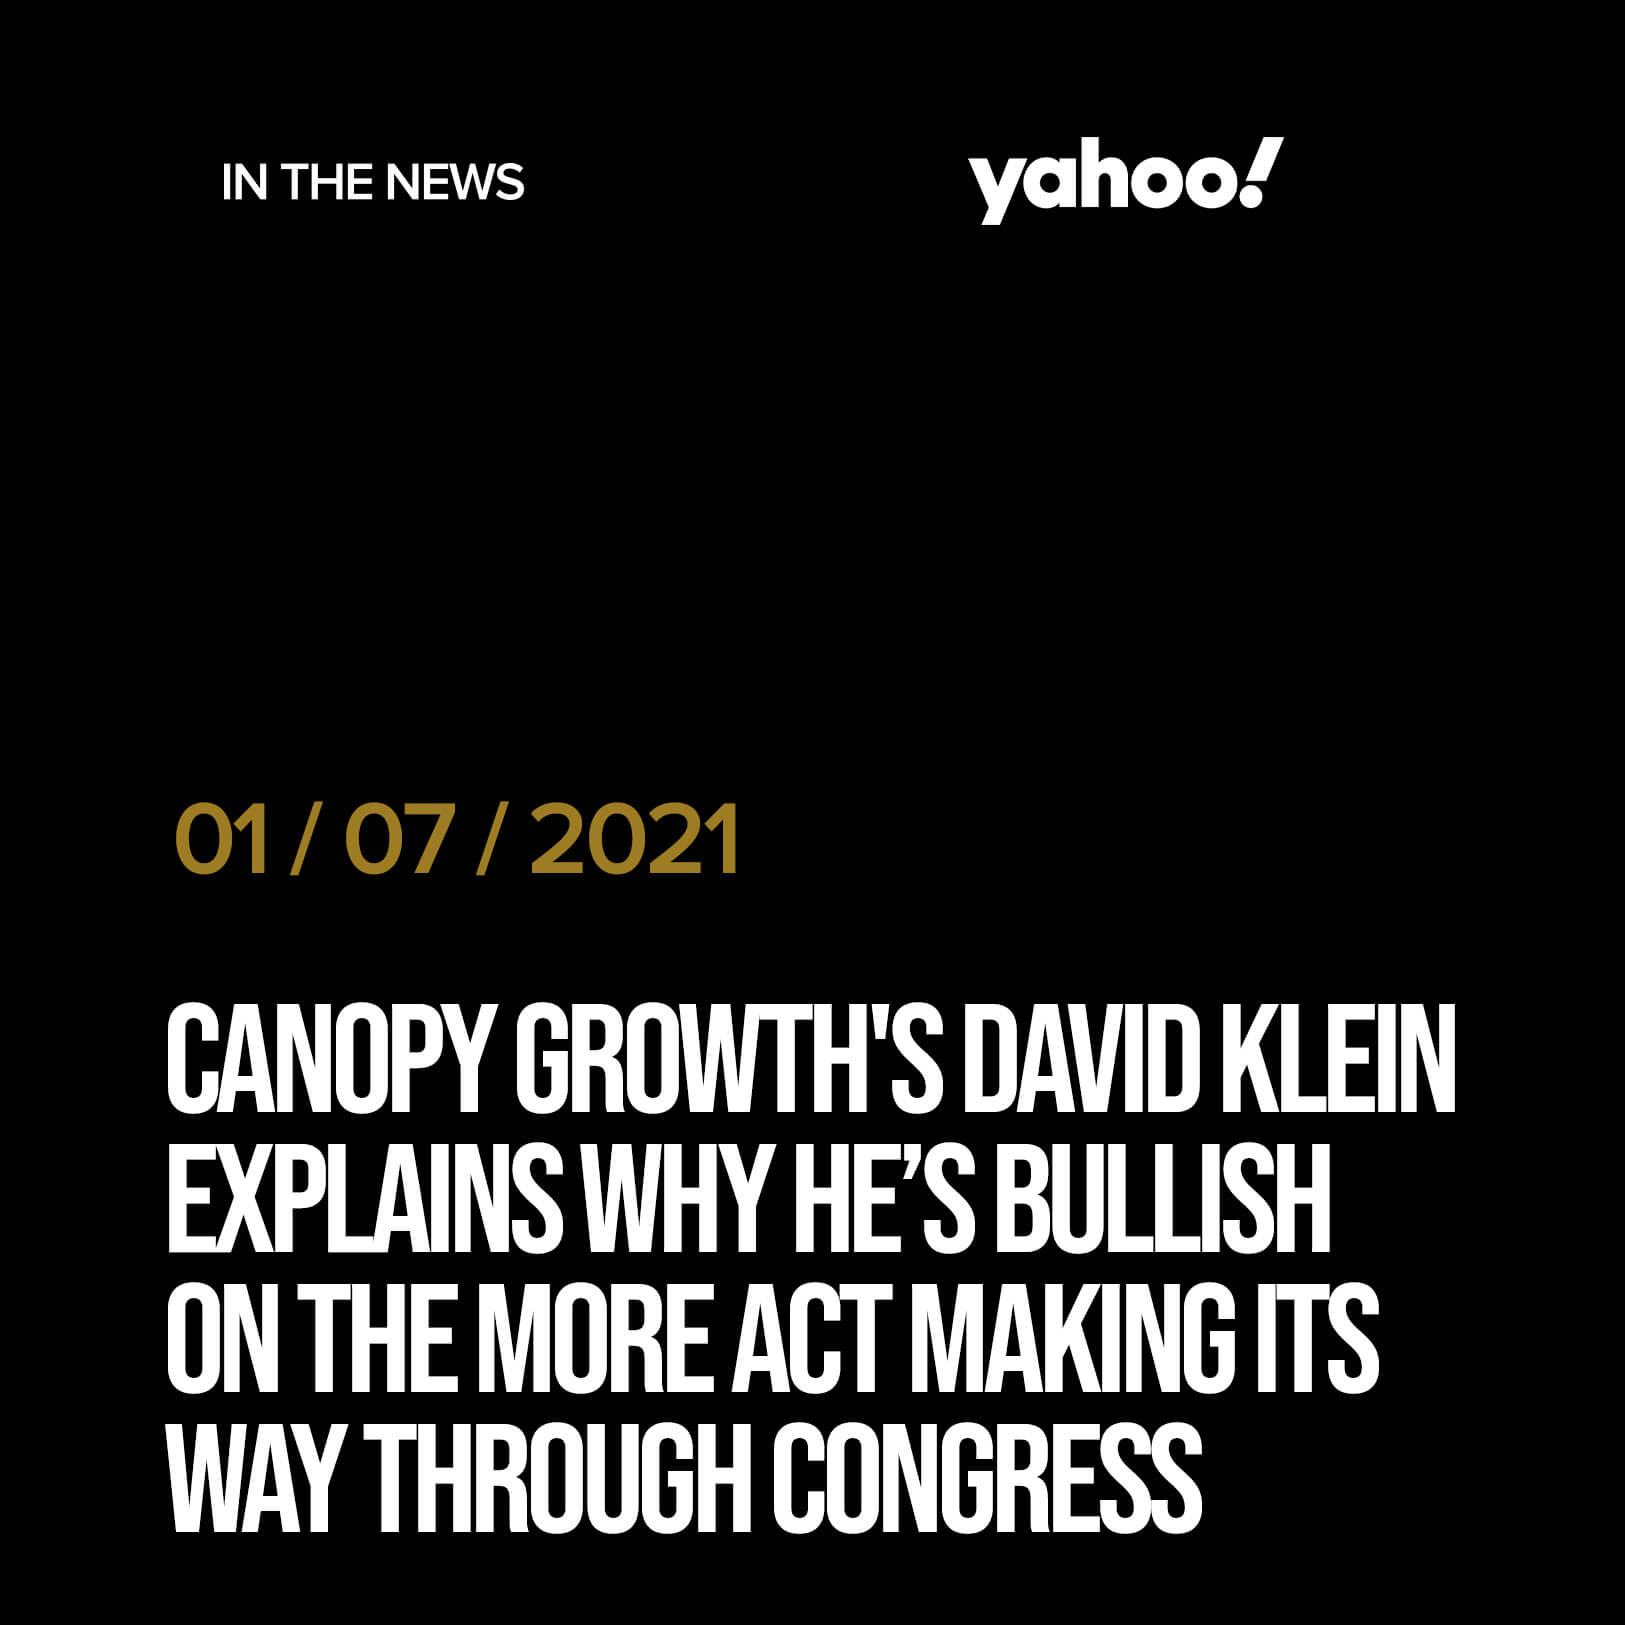 Canopy Growth's David Klein explains why he's bullish on the MORE Act making its way through Congress